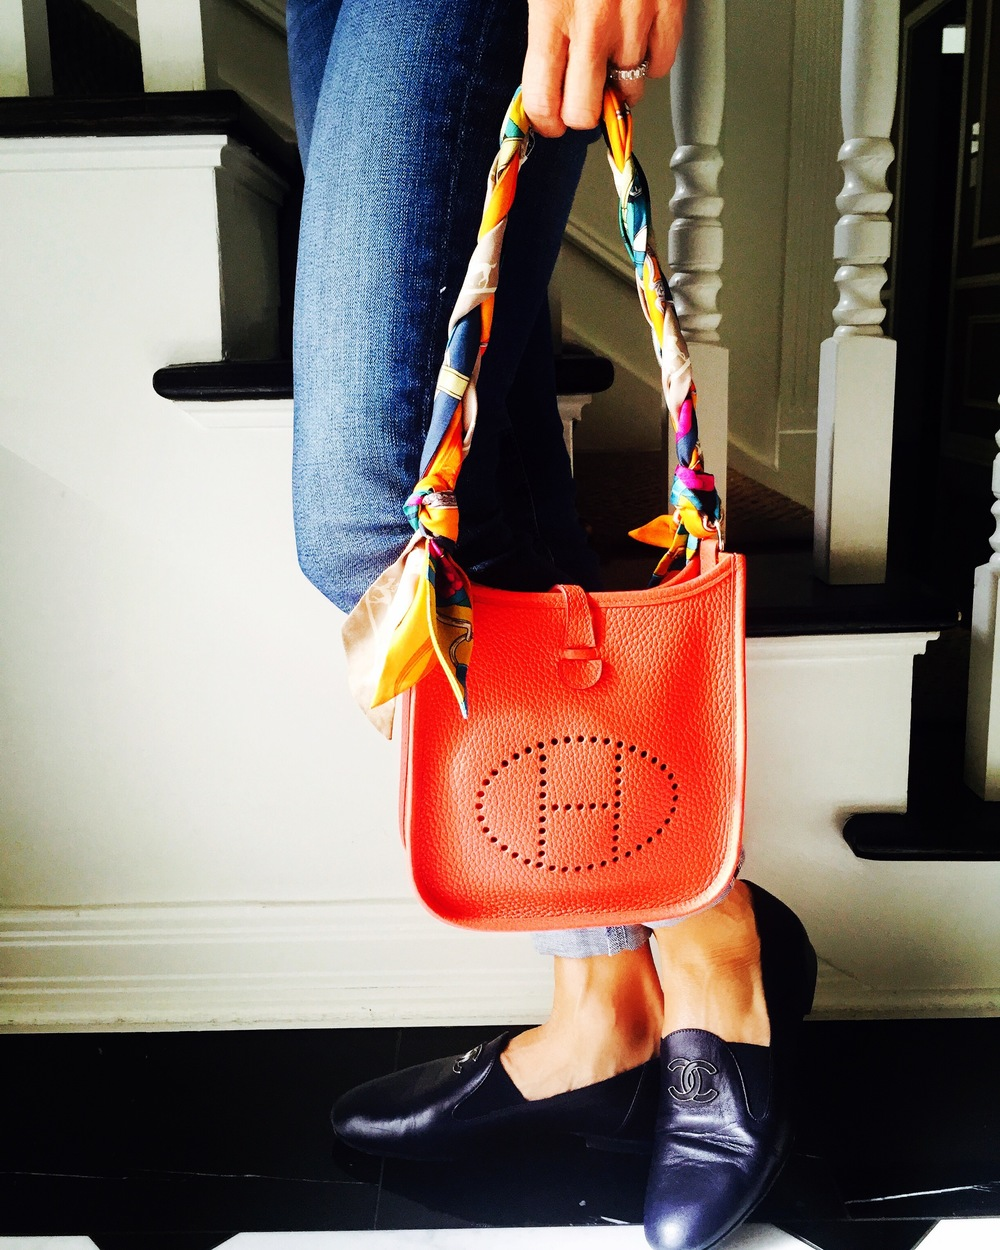 b91f89df02eb Spruce up your bag and your day with Twilly Scarves. AG JEANS / CHANEL  LOAFERS / HERMES EVELYN BAG /